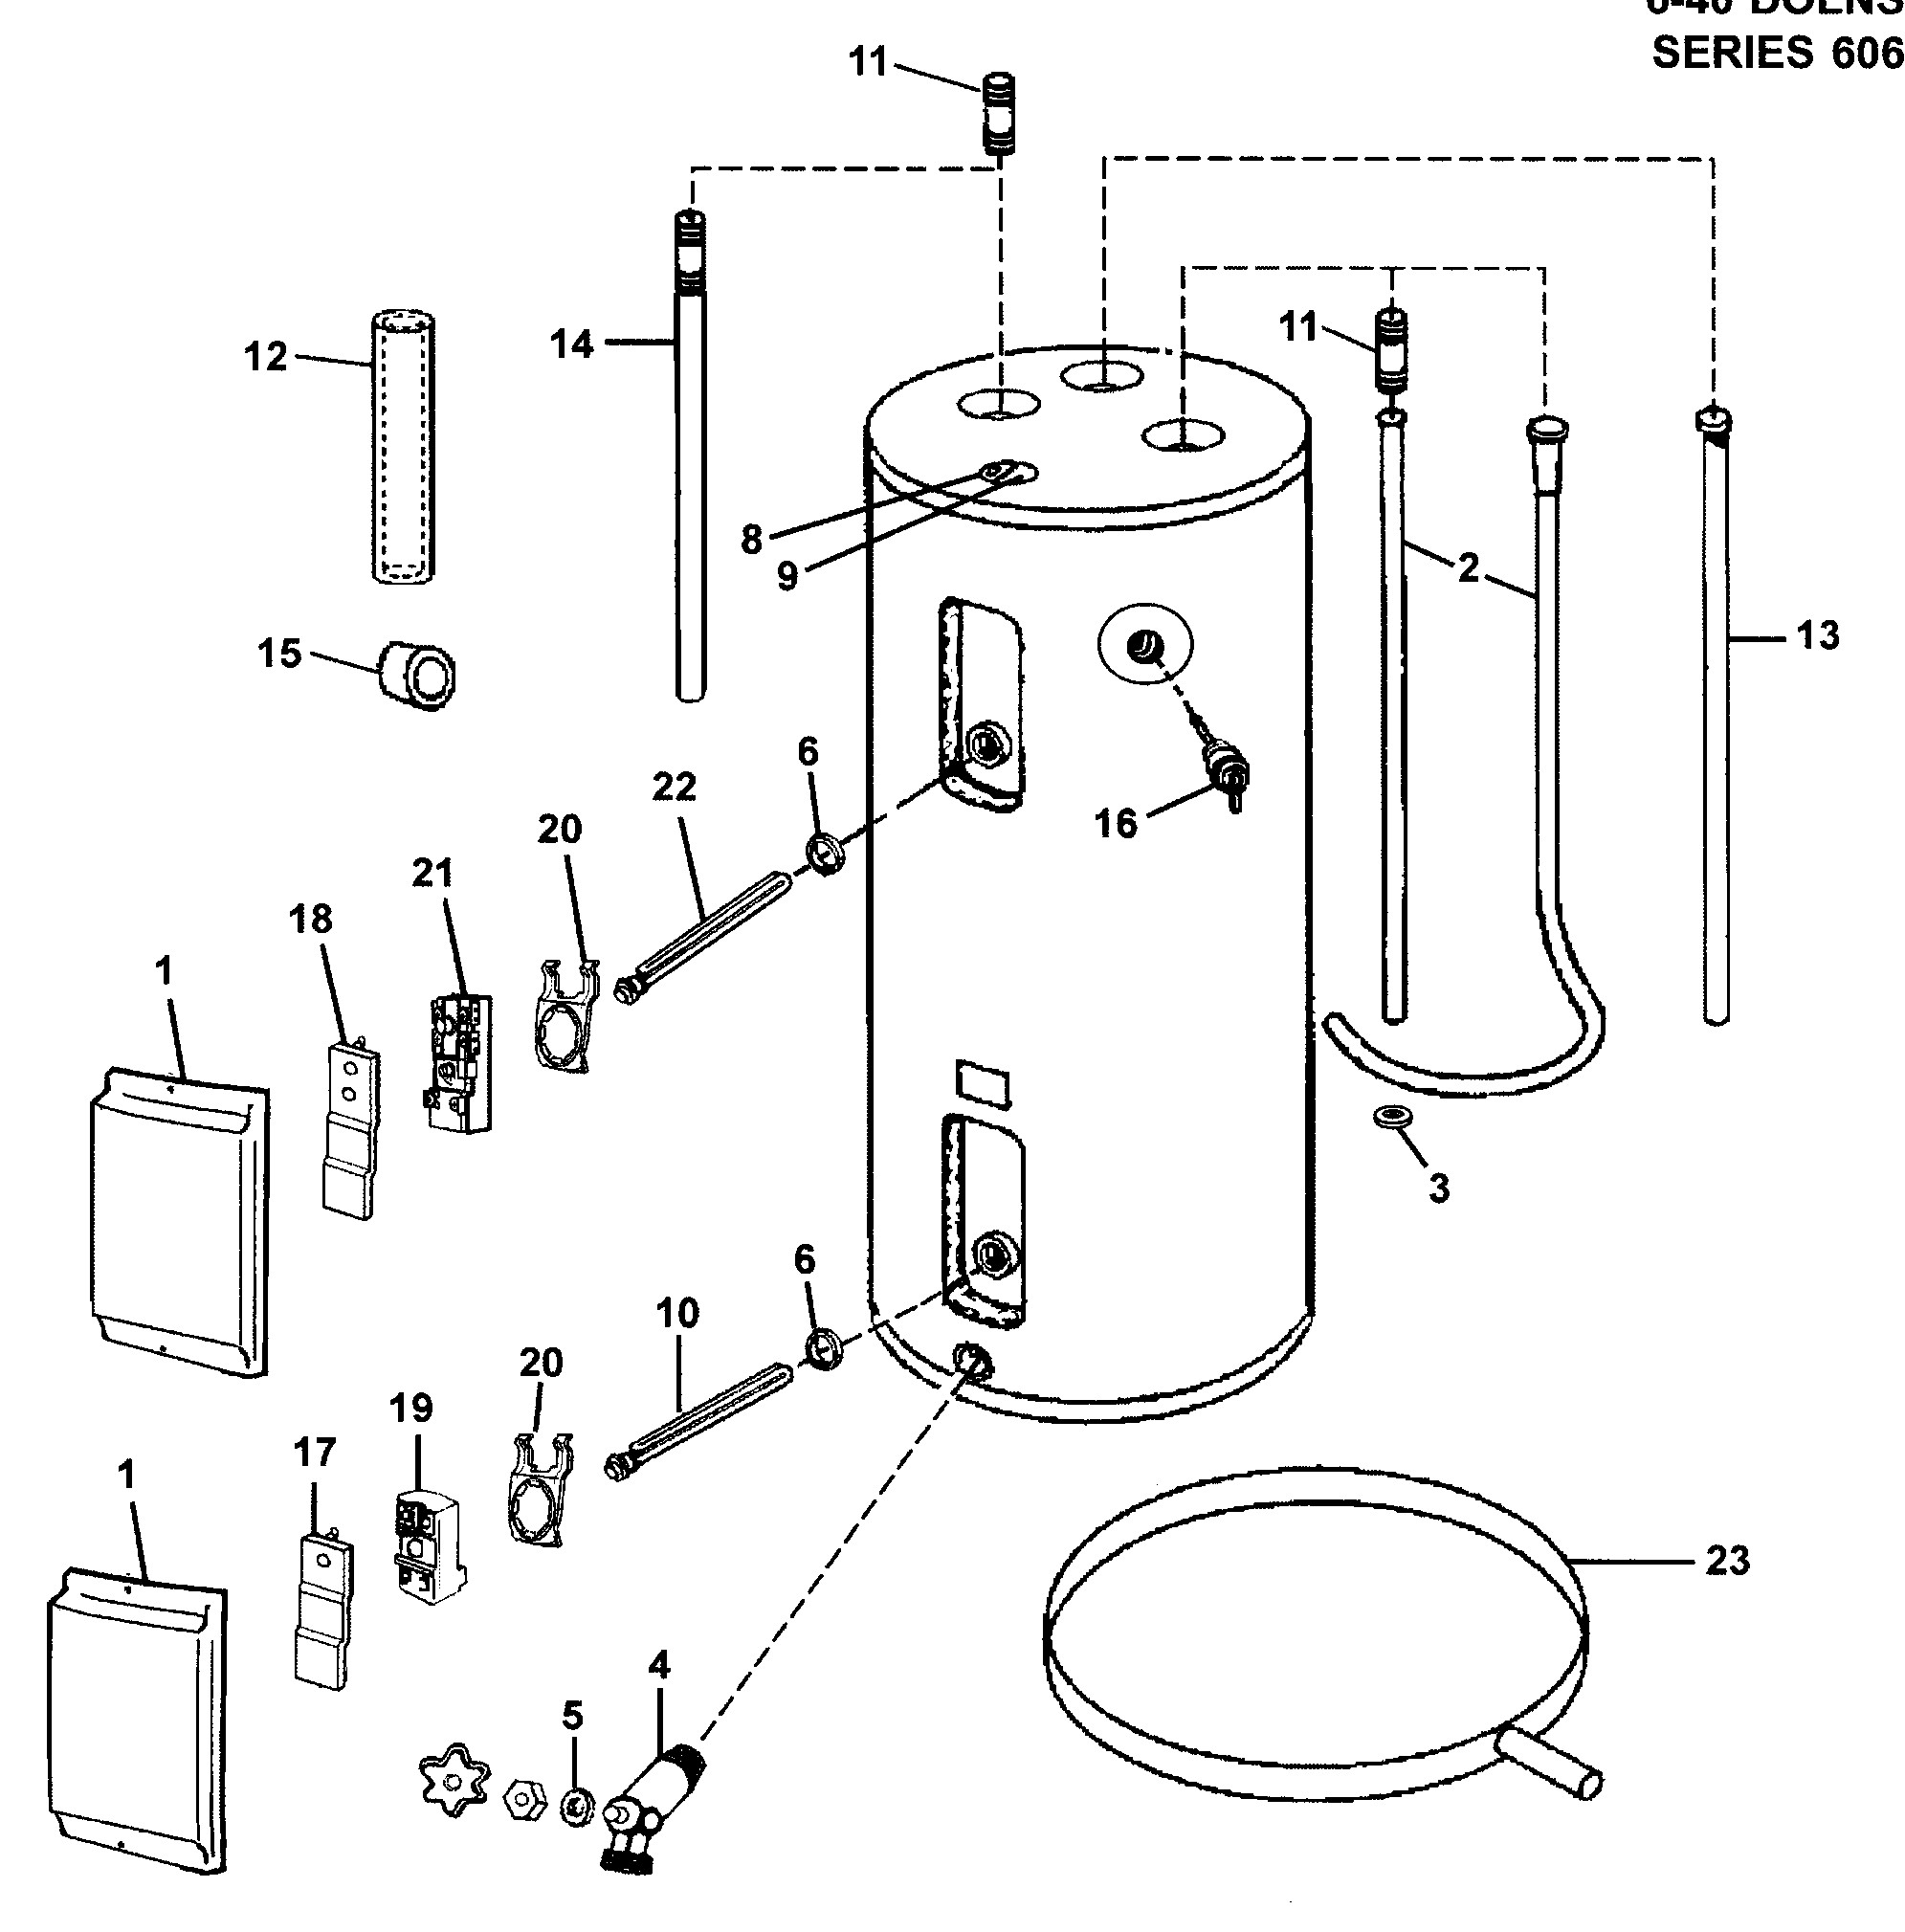 Atwood Rv Water Heater Parts Diagram Reliance Model 650dors Water Heater Electric Genuine Parts Of Atwood Rv Water Heater Parts Diagram